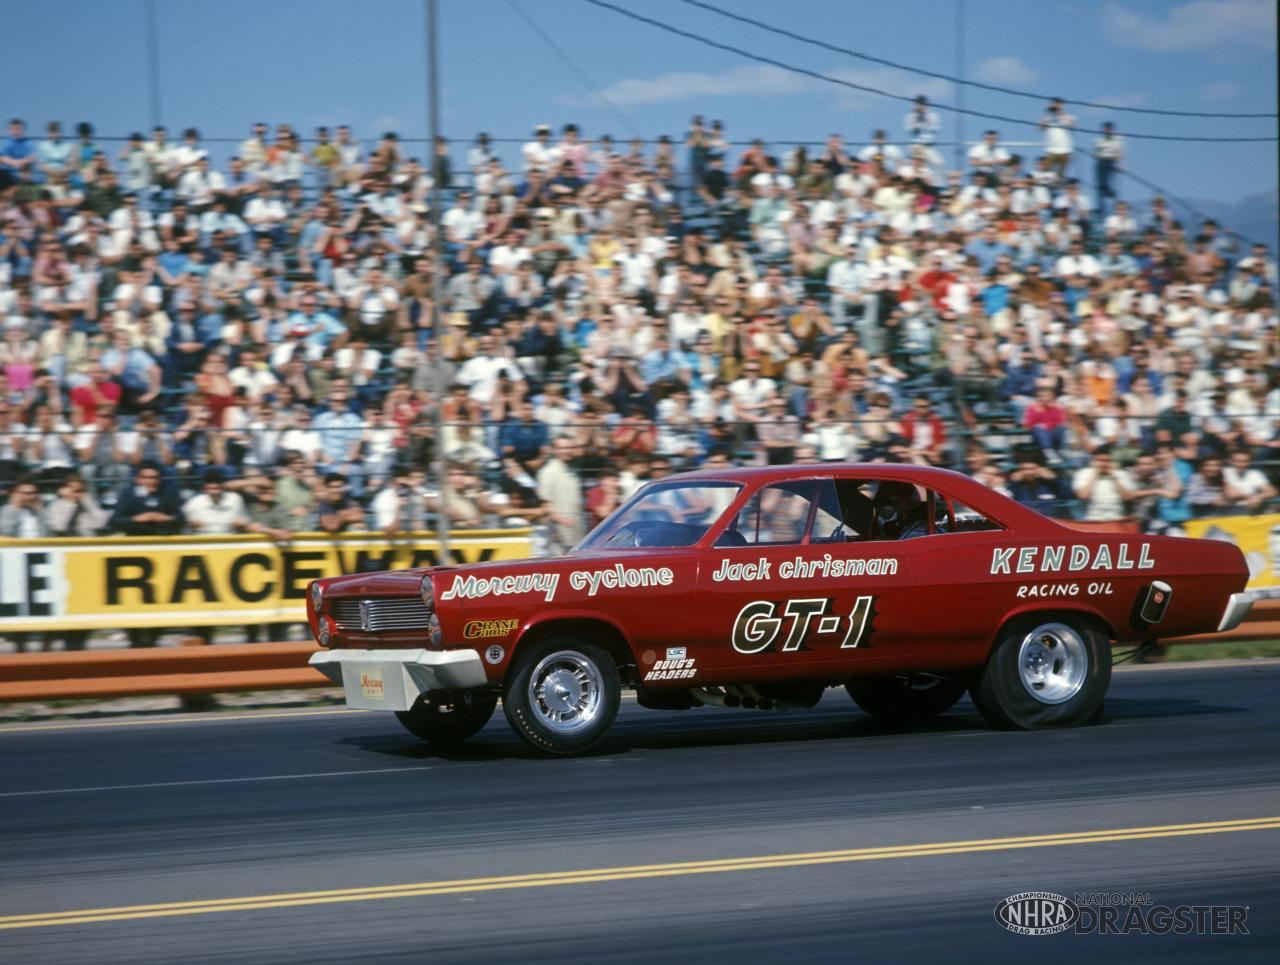 Gallery Check Out These Iconic Funny Cars From The 1960s Nhra